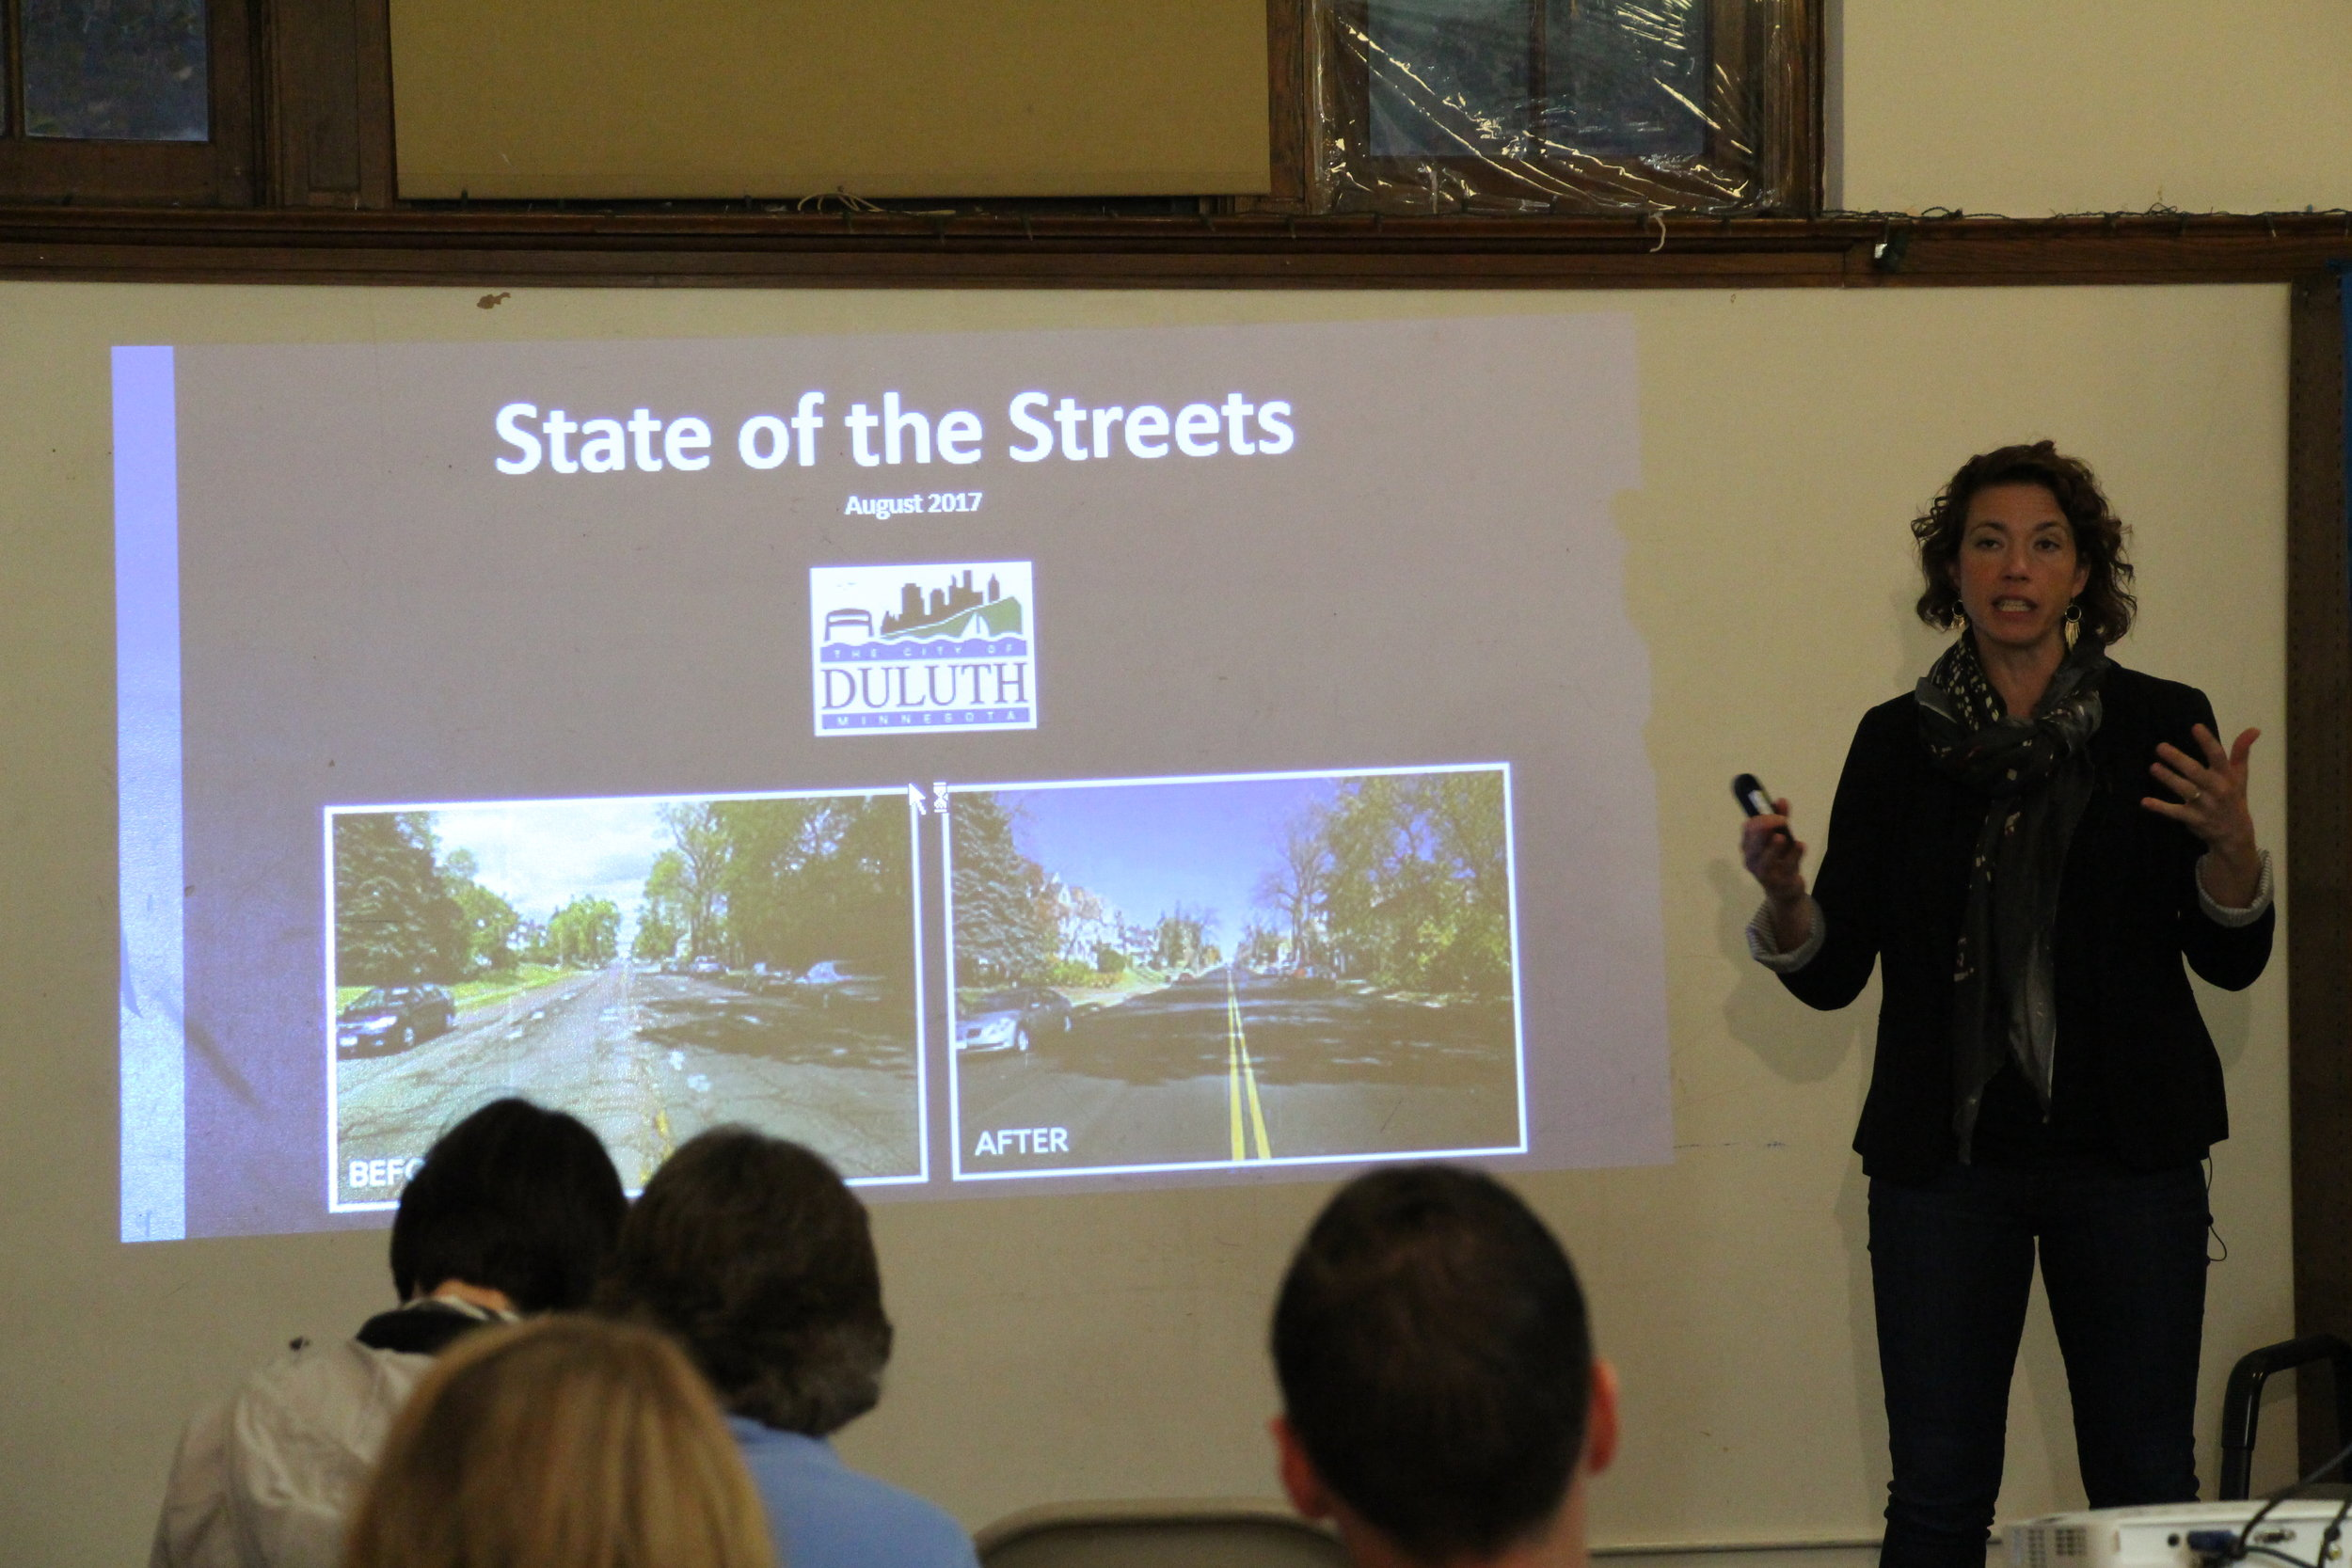 Mayor Emily Larson proposes the sales tax increase at a State of the Streets community meeting